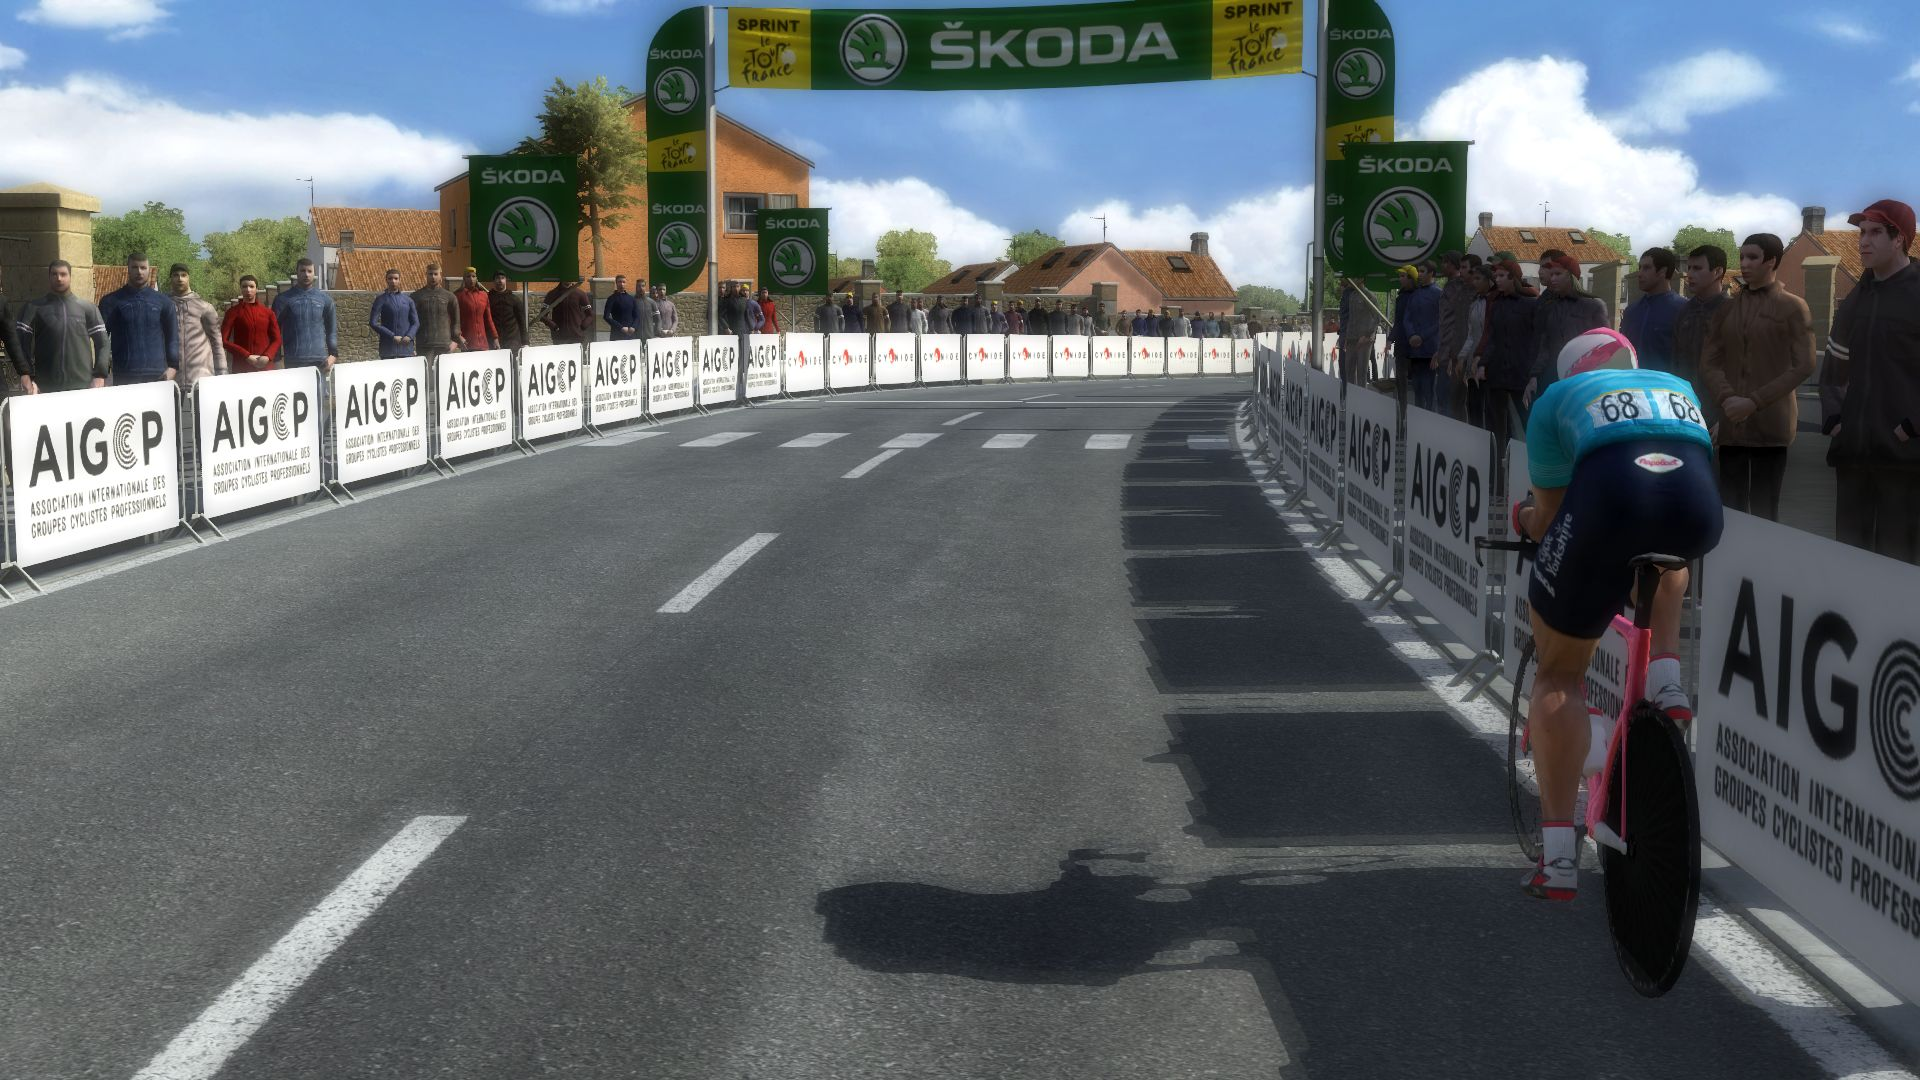 pcmdaily.com/images/mg/2019/Races/HC/Slovenie/mg19_slo_s04_15.jpg